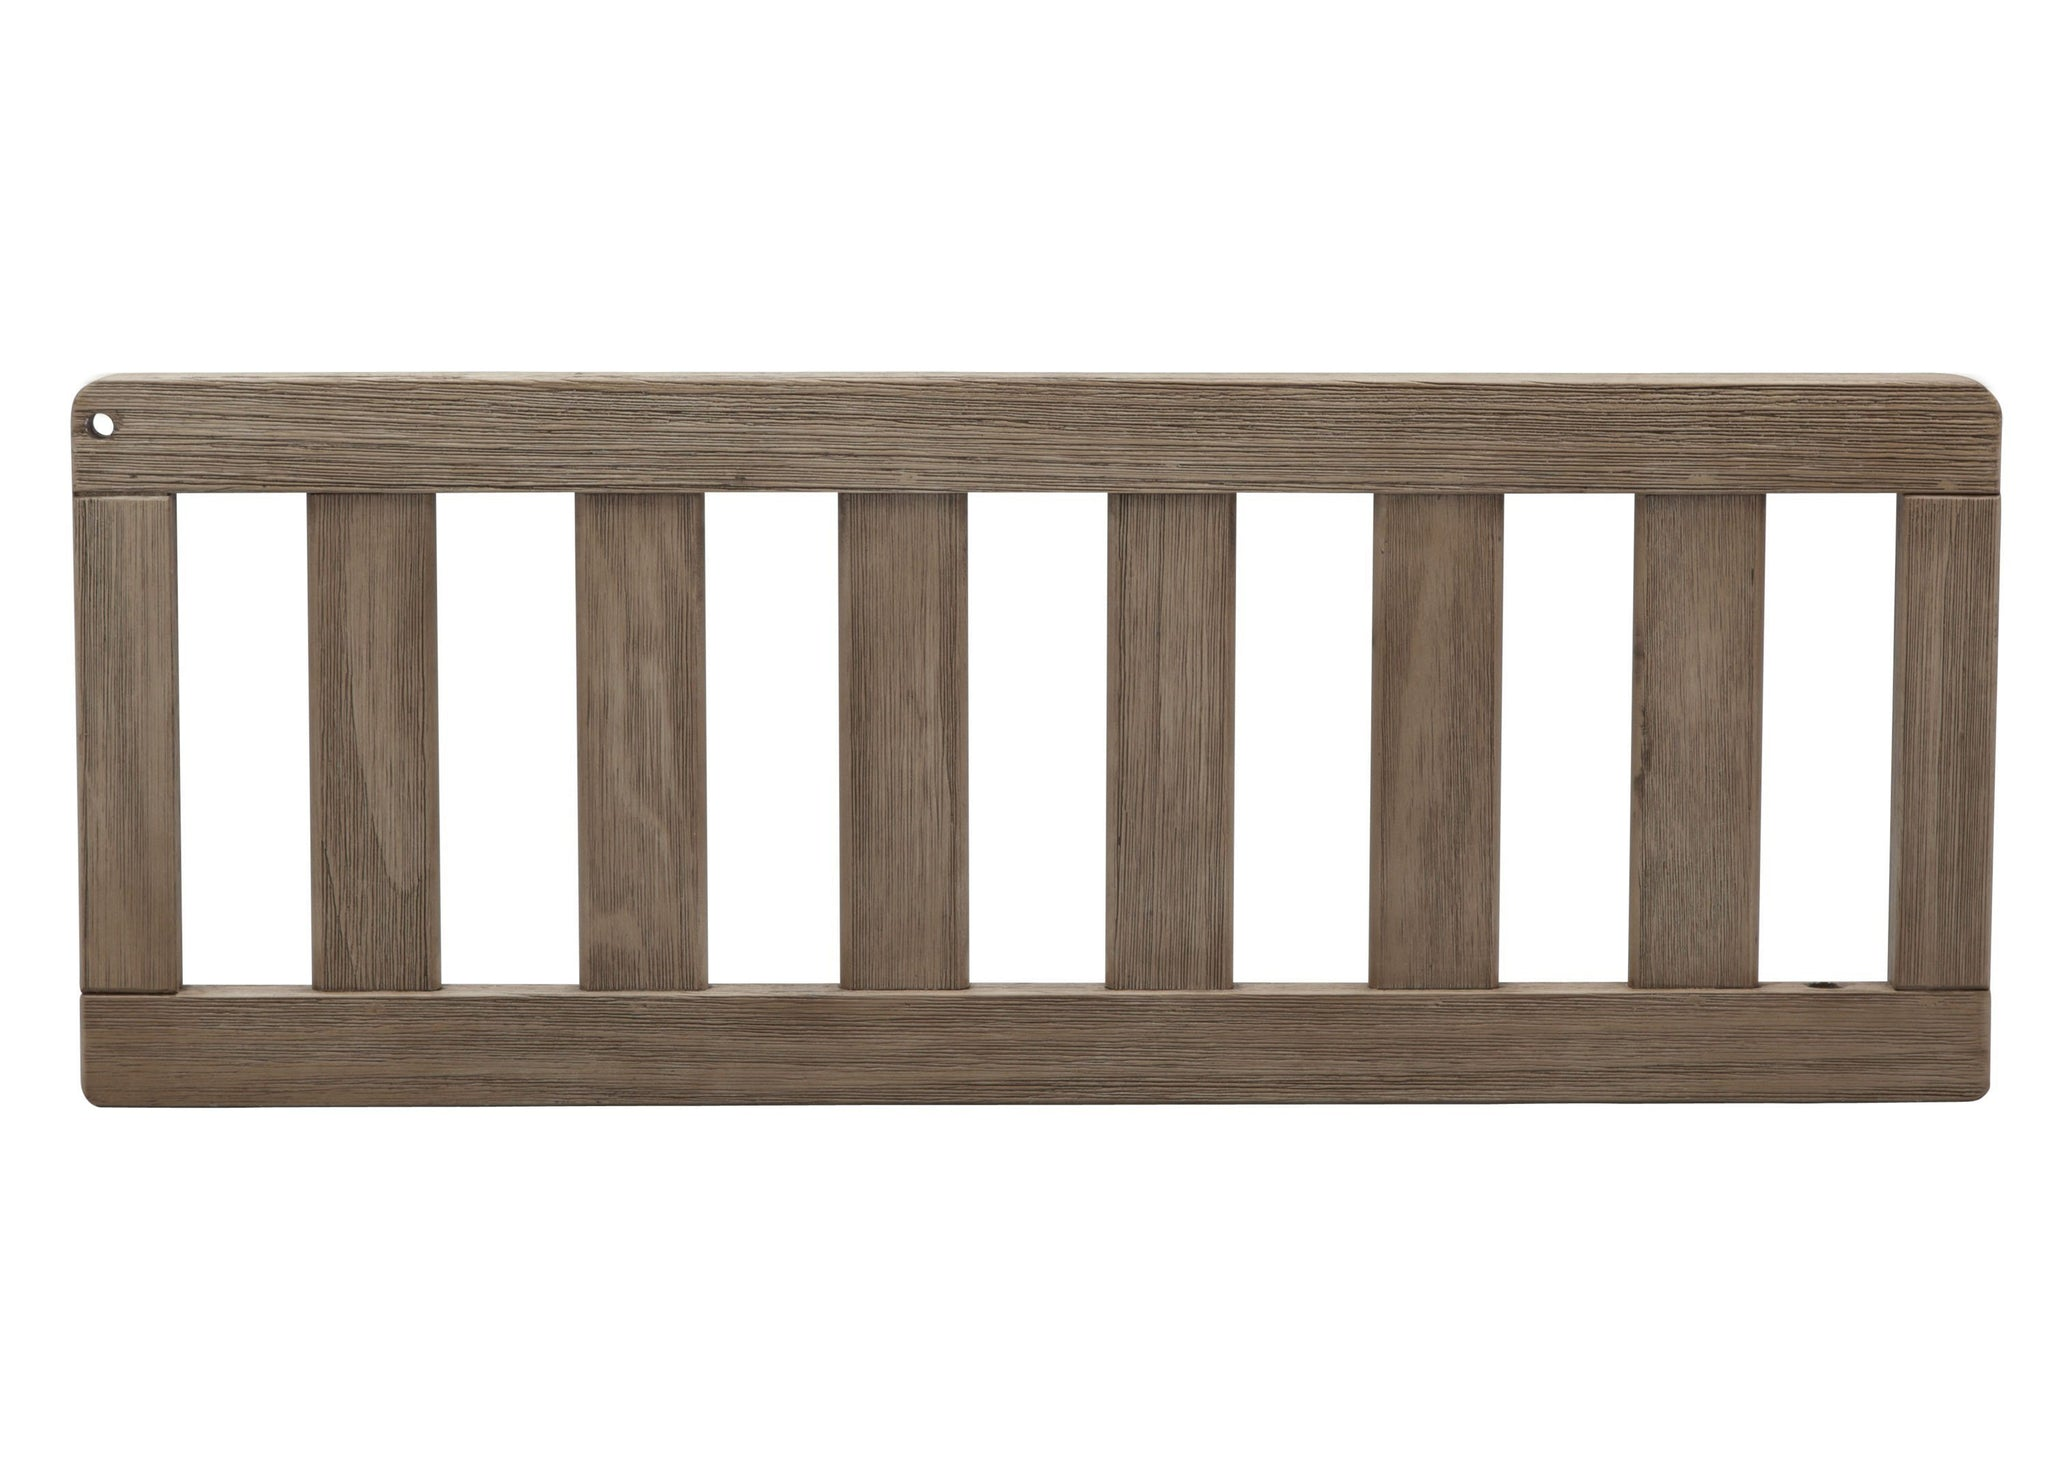 Serta Daybed/Toddler Guardrail Kit (703725) Rustic Whitewash (112ST) Front View a2a